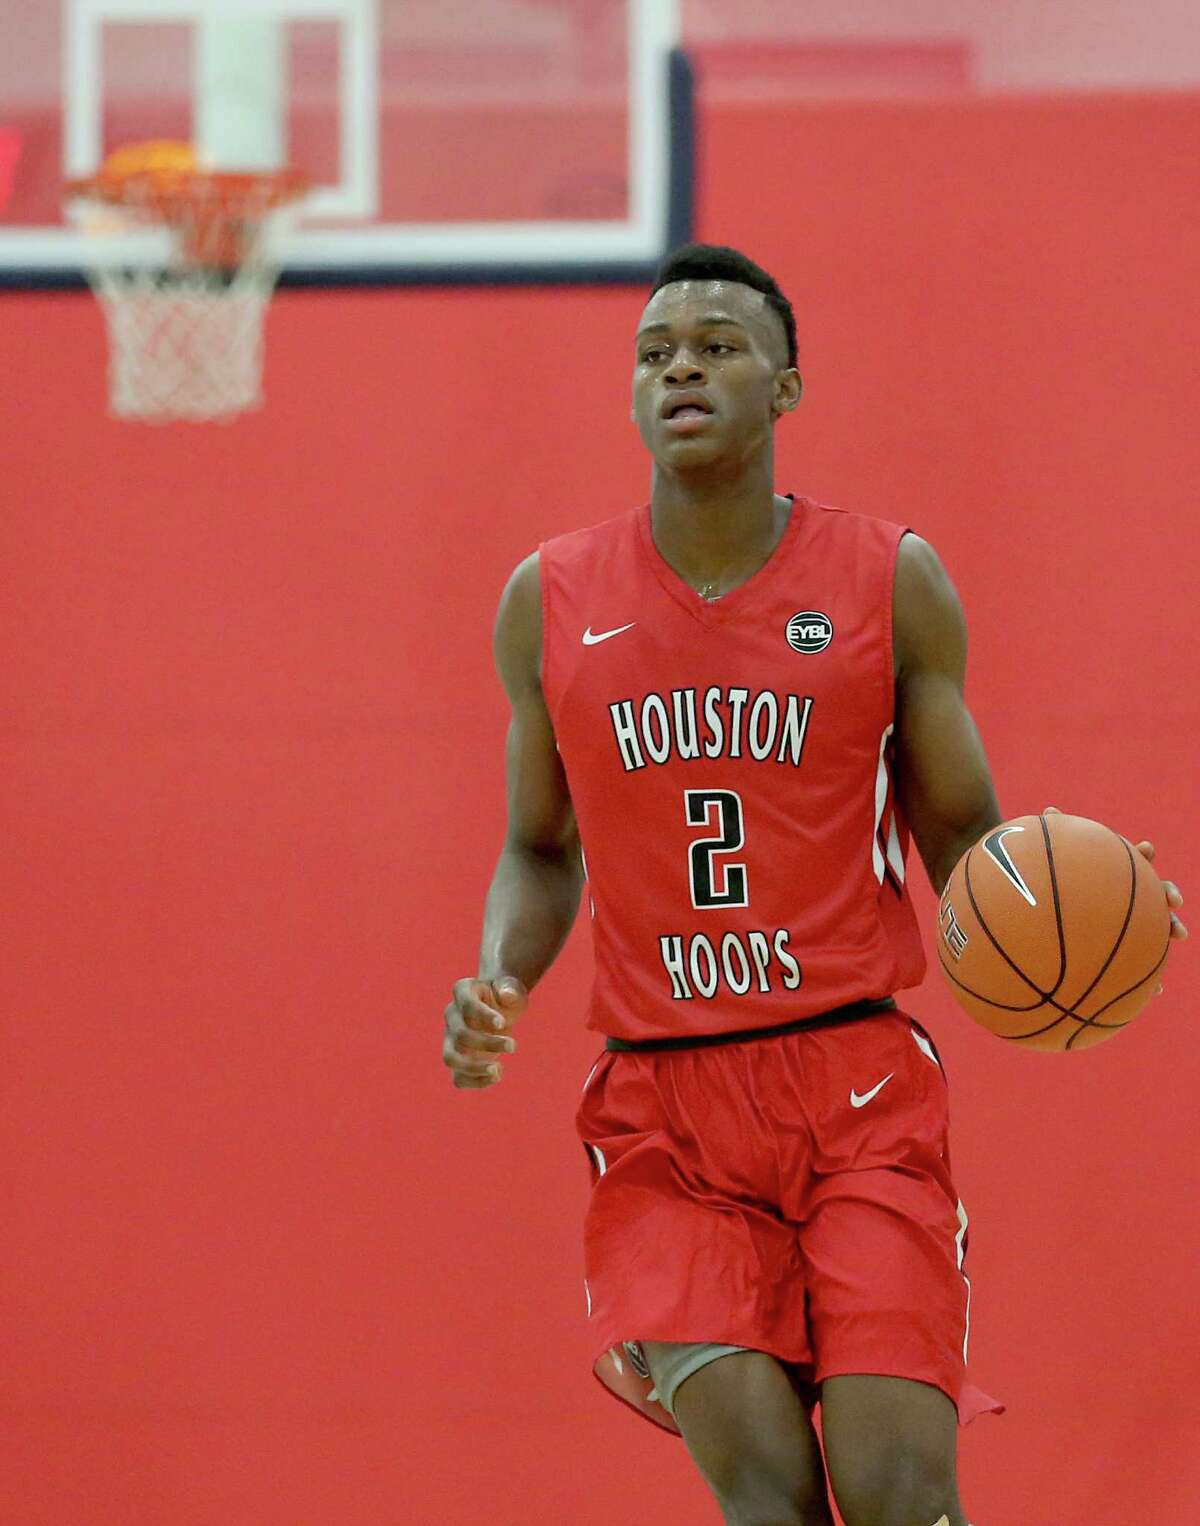 Houston's Jarred Vanderbilt (2) dribbles against St. Louis at the MI3 Center on Saturday, May 9, 2015 in Houston, TX. St Louis won 92 to 84.